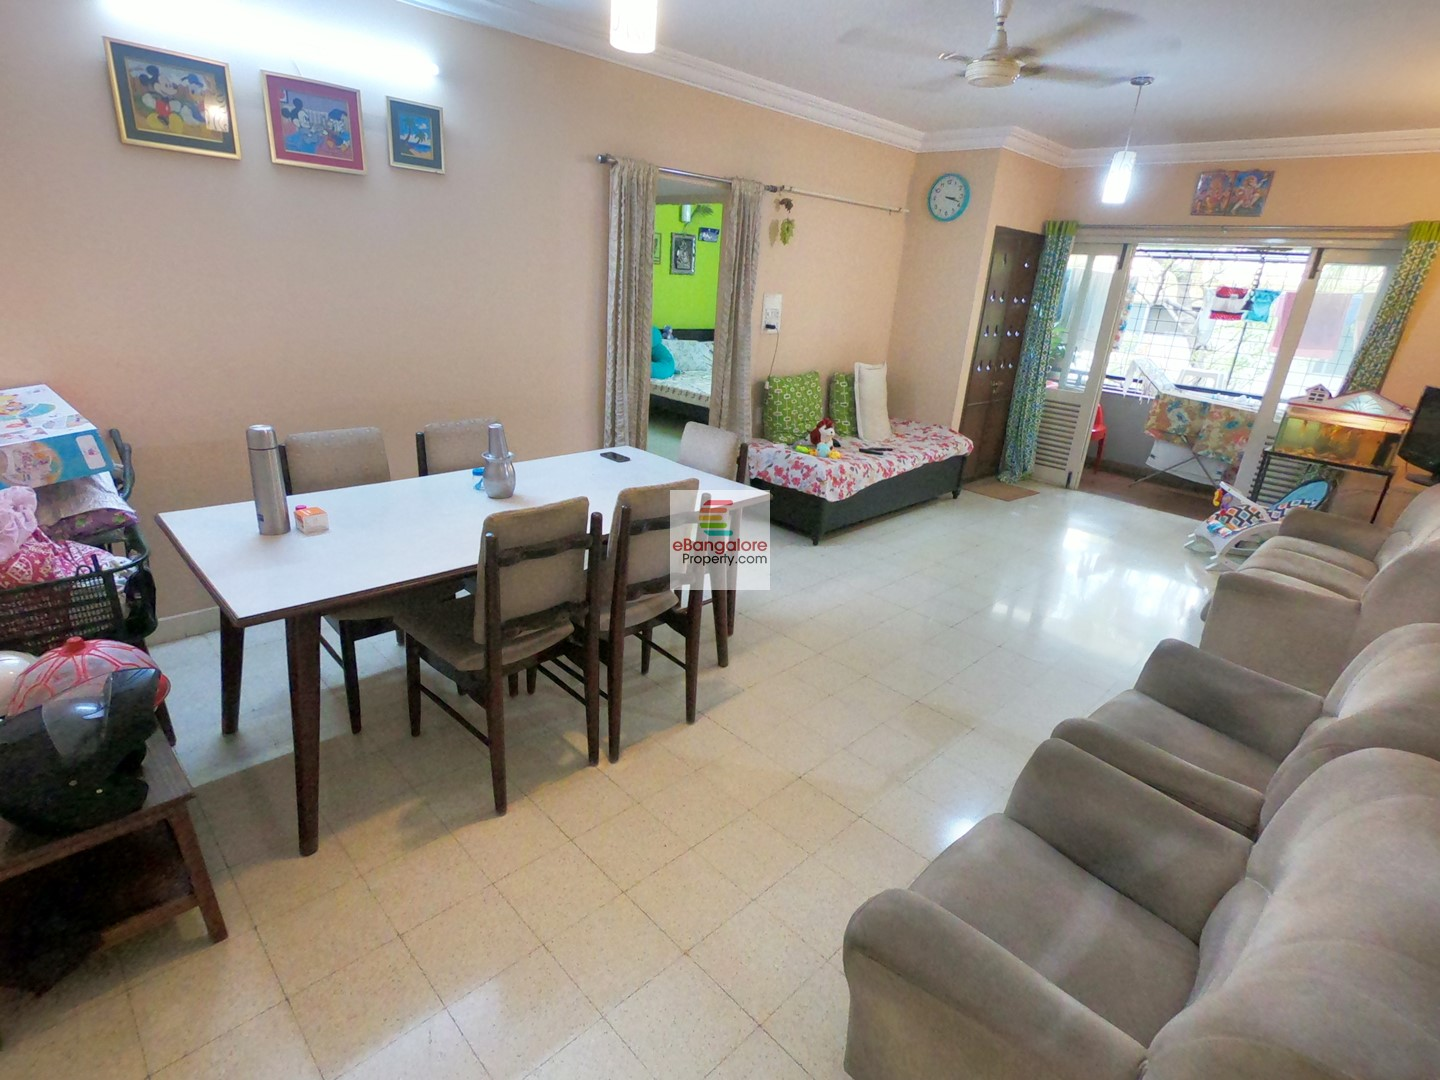 Frazer Town – 2BHK Flat for Sale – Just 2.2 KM from Brigade/MG Road